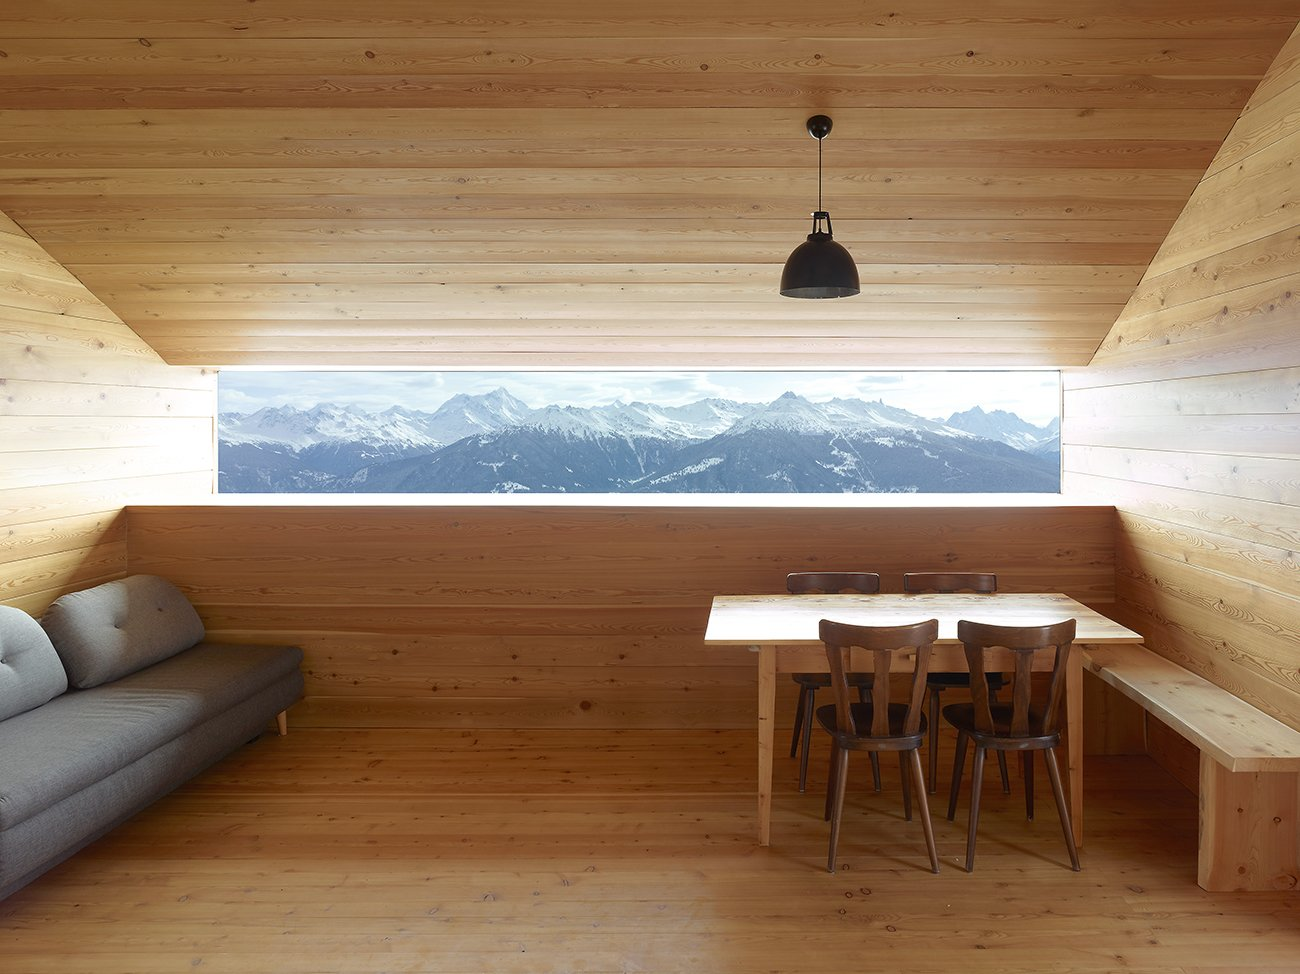 Boisset Home in the Alps of Le Biolley, Switzerland; Architects: Savioz Fabrizzi Architects; Photo by Thomas Jantscher  Woodgrain from Cabin Fever